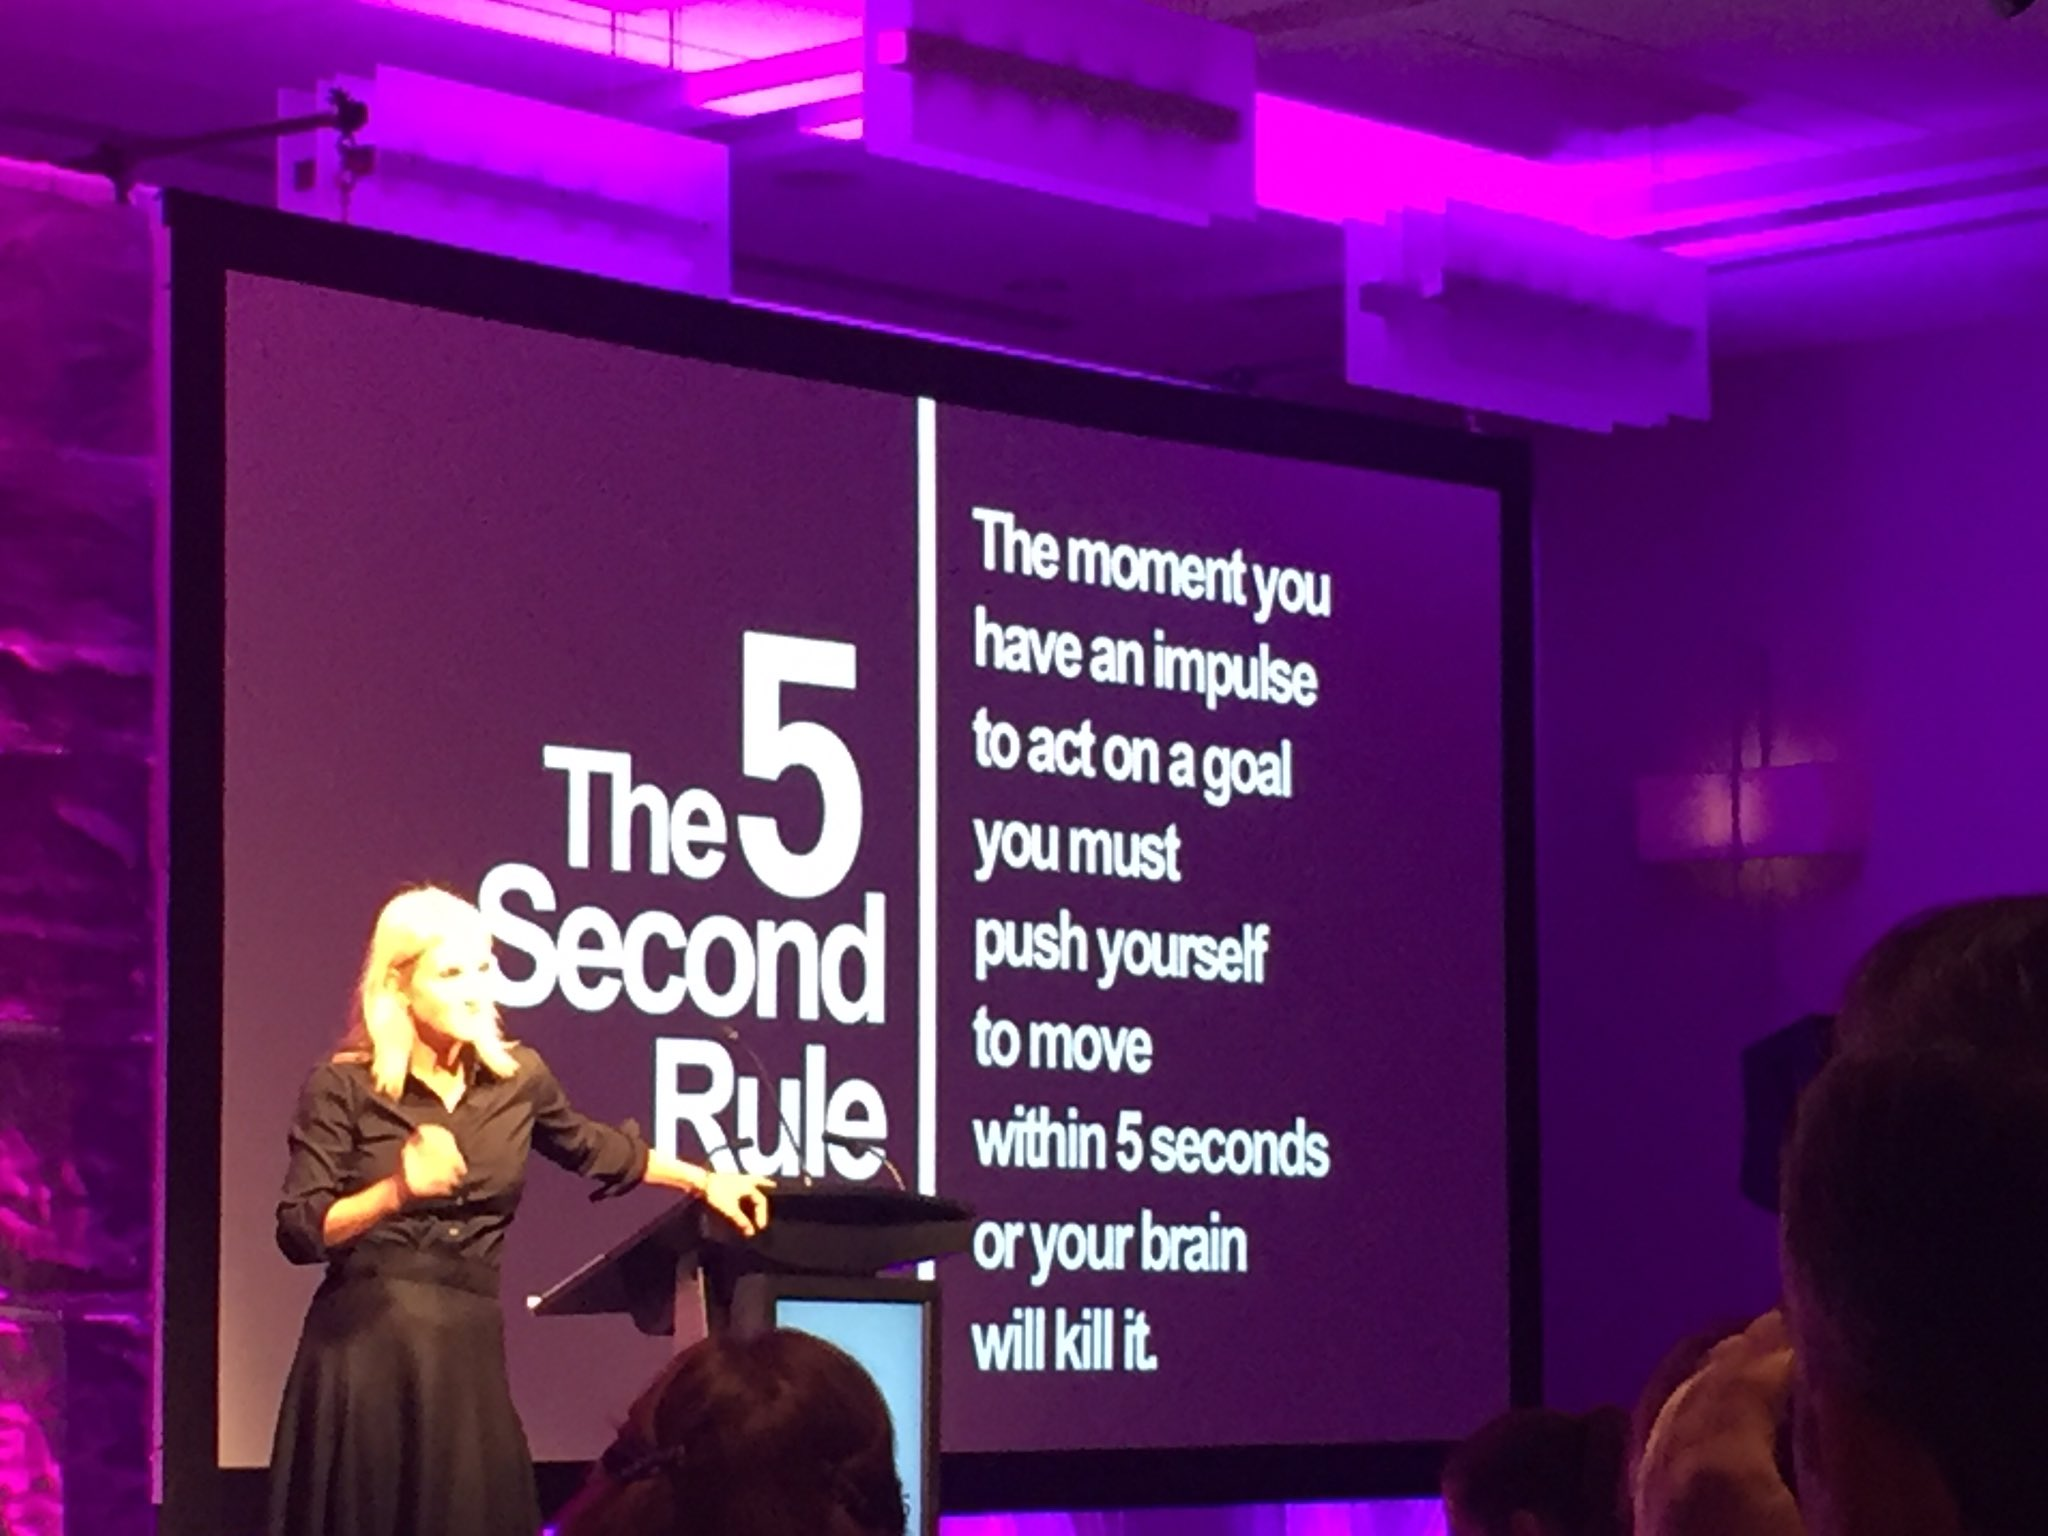 Knowing what to do means you're smart, doing it takes courage #5secondrule give yourself a push @melrobbins #AACE16 https://t.co/jAqz7J7ELw